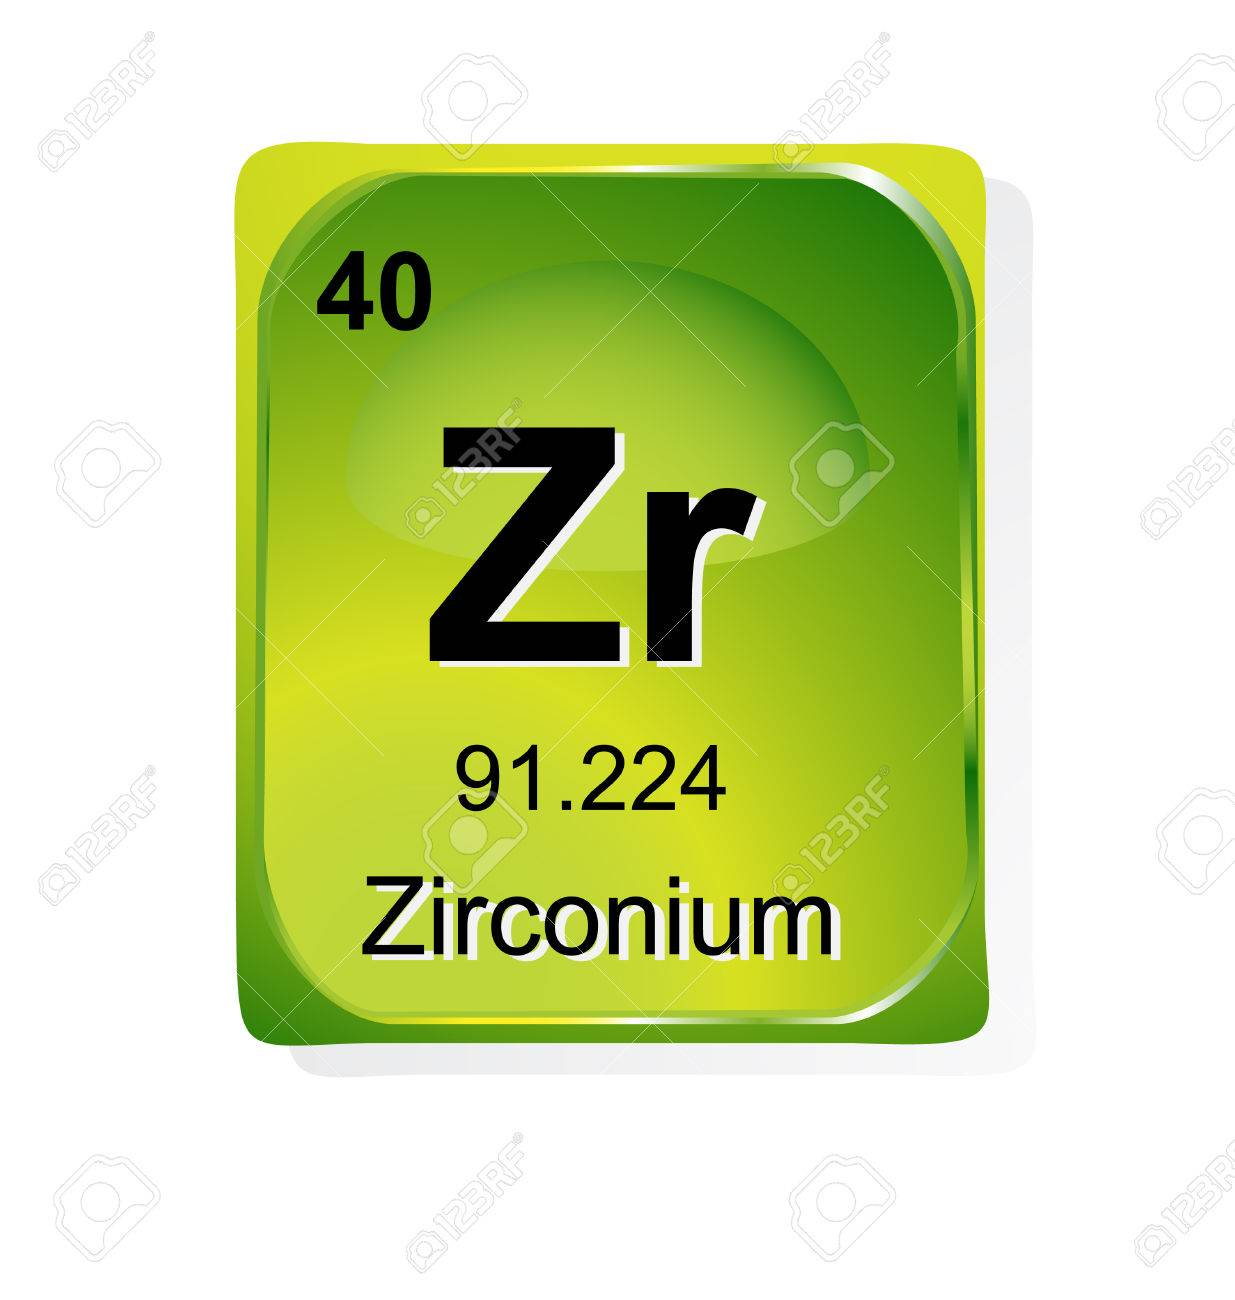 Zirconium Chemical Element With Atomic Number, Symbol And Weight ...